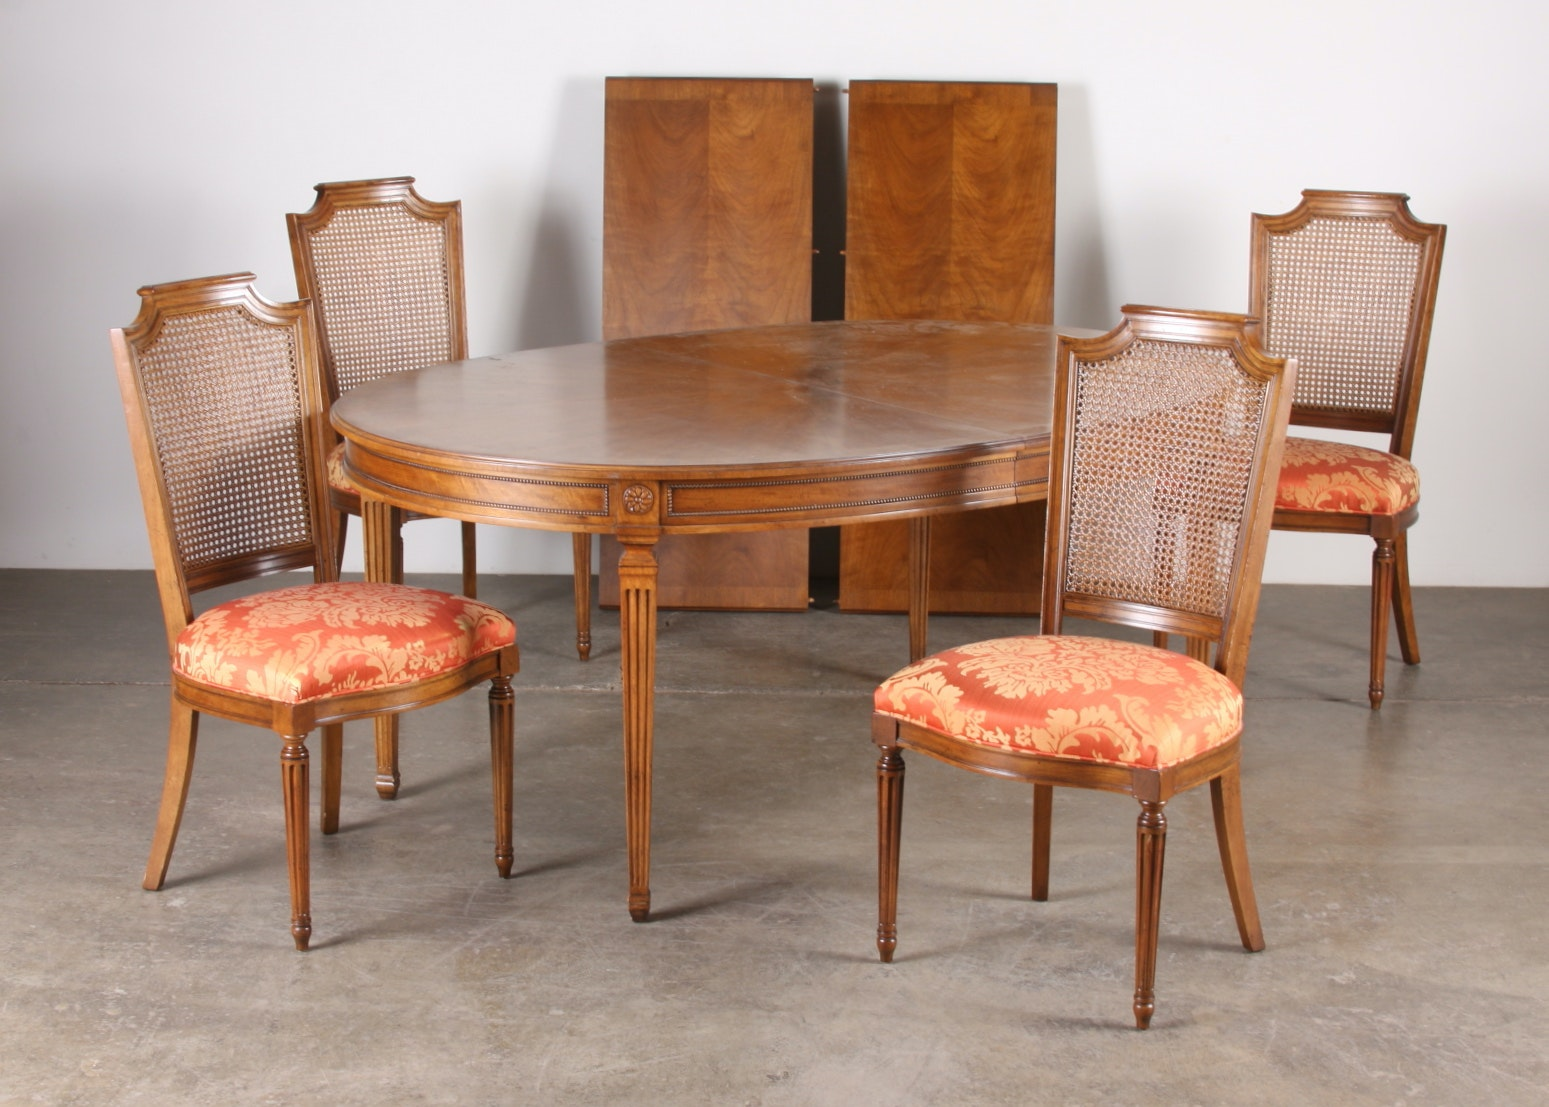 baker dining room table and chairs gorgeous baker dining table and chairs ebth 8856